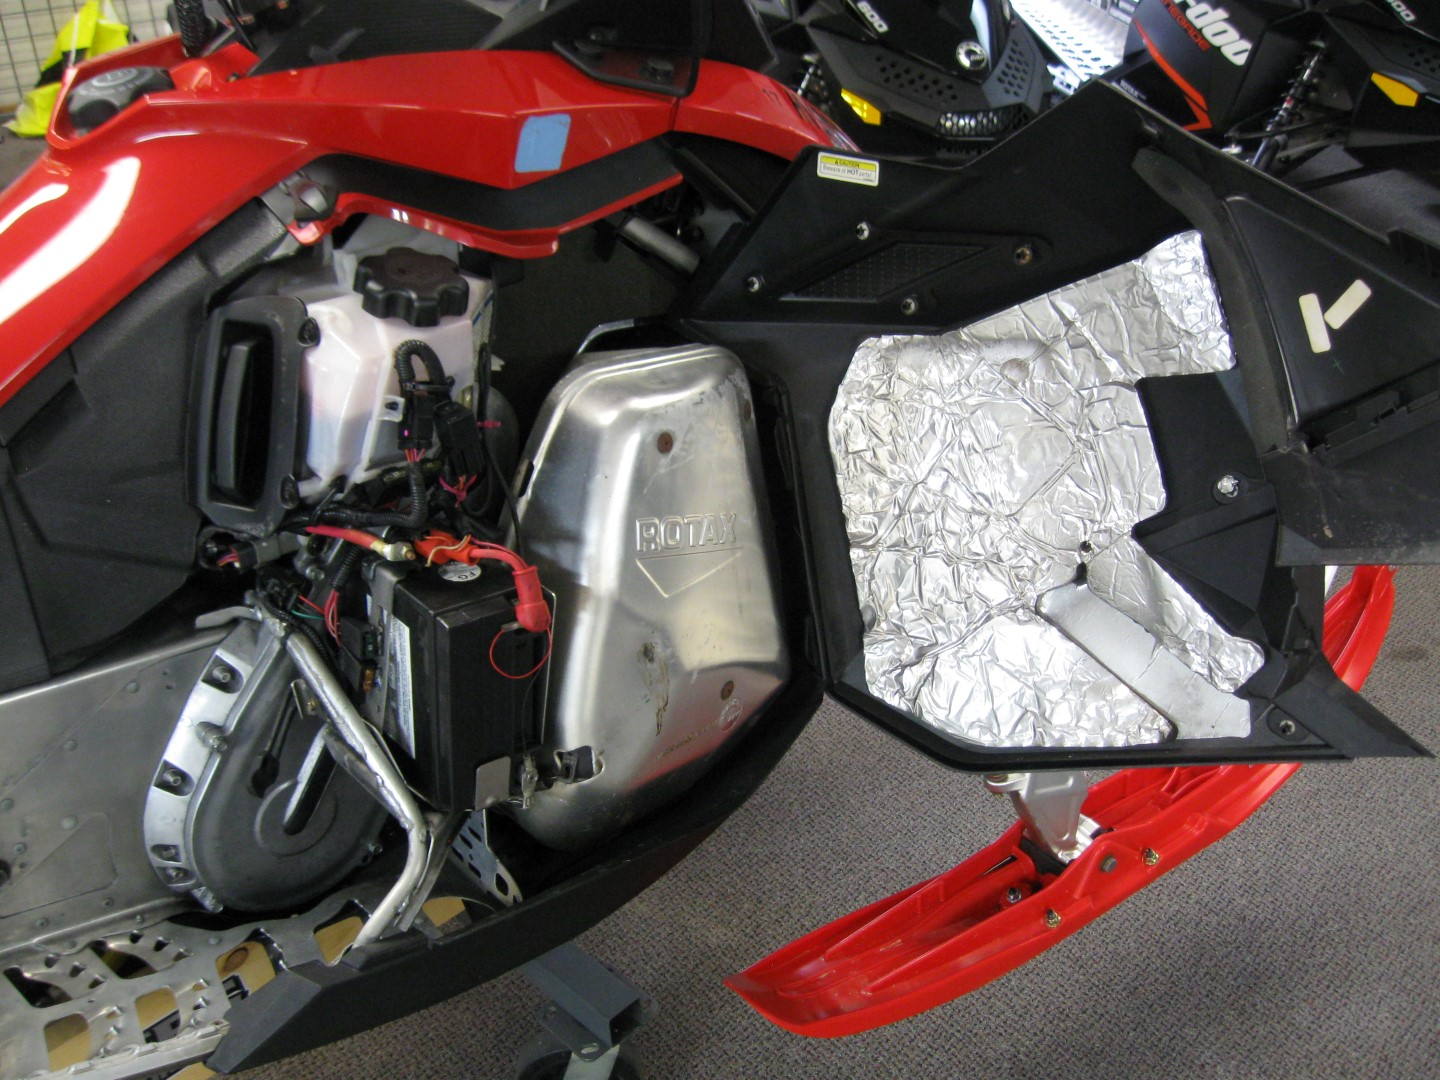 Snowmobile 2011 Ski-Doo Renegade 800 XP for sale engine compartment view Maple Grove MN Seaberg motorsports